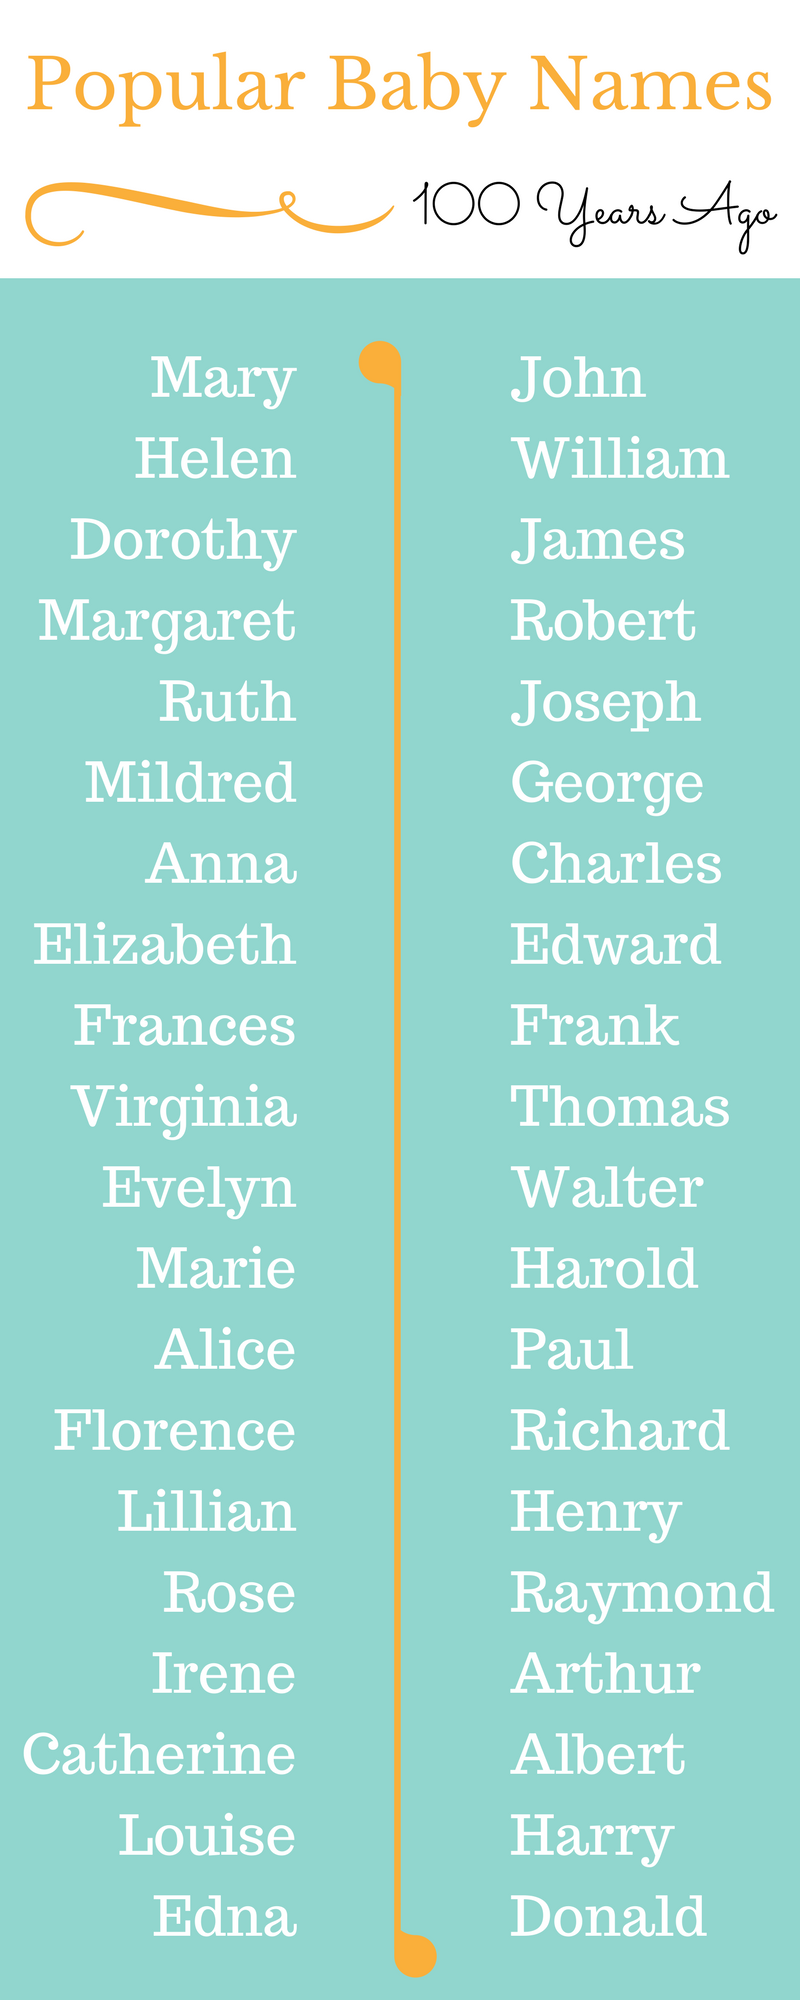 These were the most popular baby names exactly 100 years ago | Baby